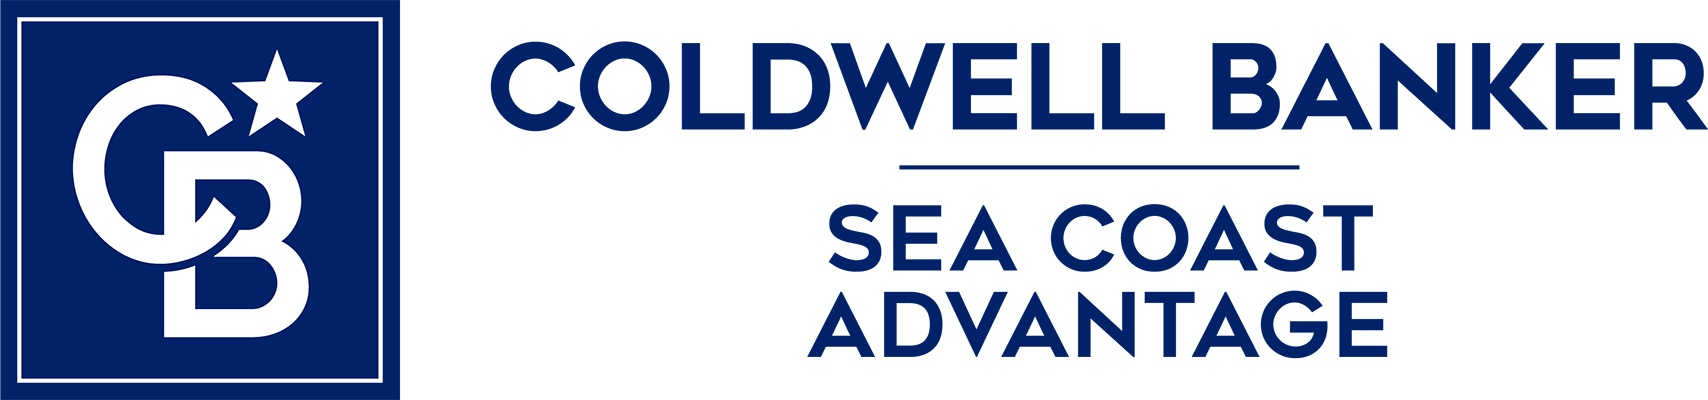 Katie Melik - Coldwell Banker Sea Coast Advantage Realty